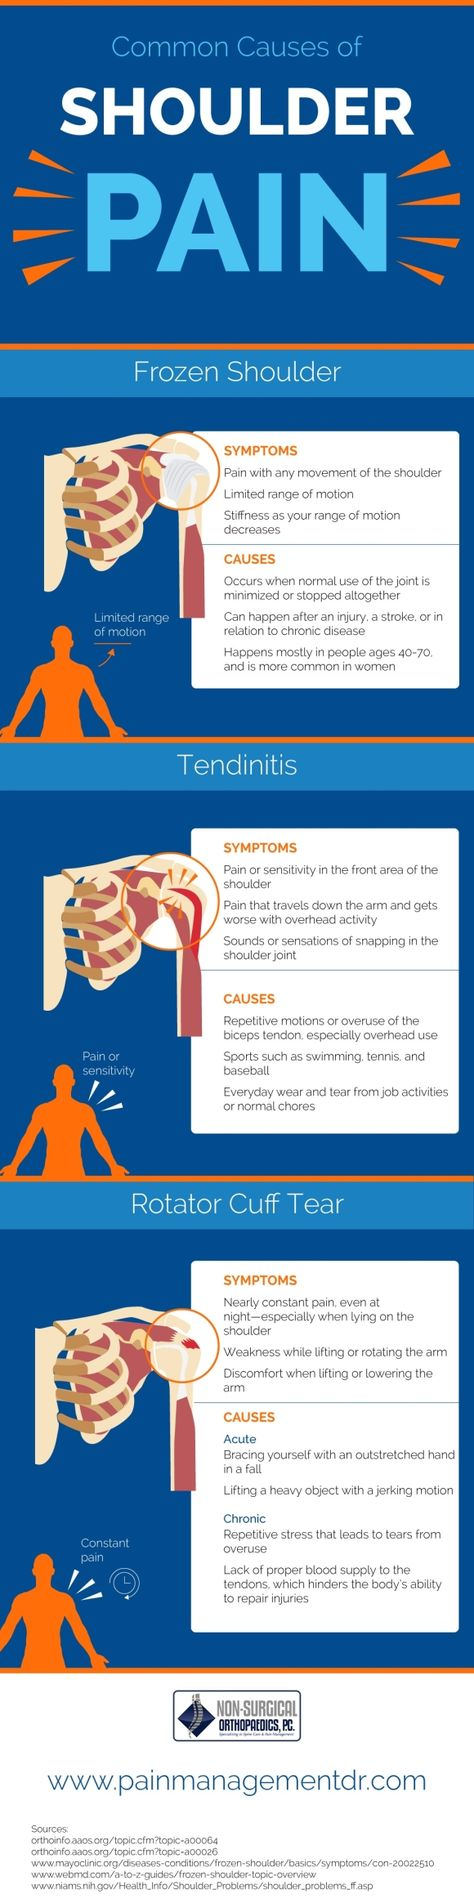 A rotator cuff tear can result in nearly constant shoulder pain, even at night! Click over to this infographic about orthopedic care in Marietta to read more facts about rotator cuff tears and other common causes of shoulder pain.